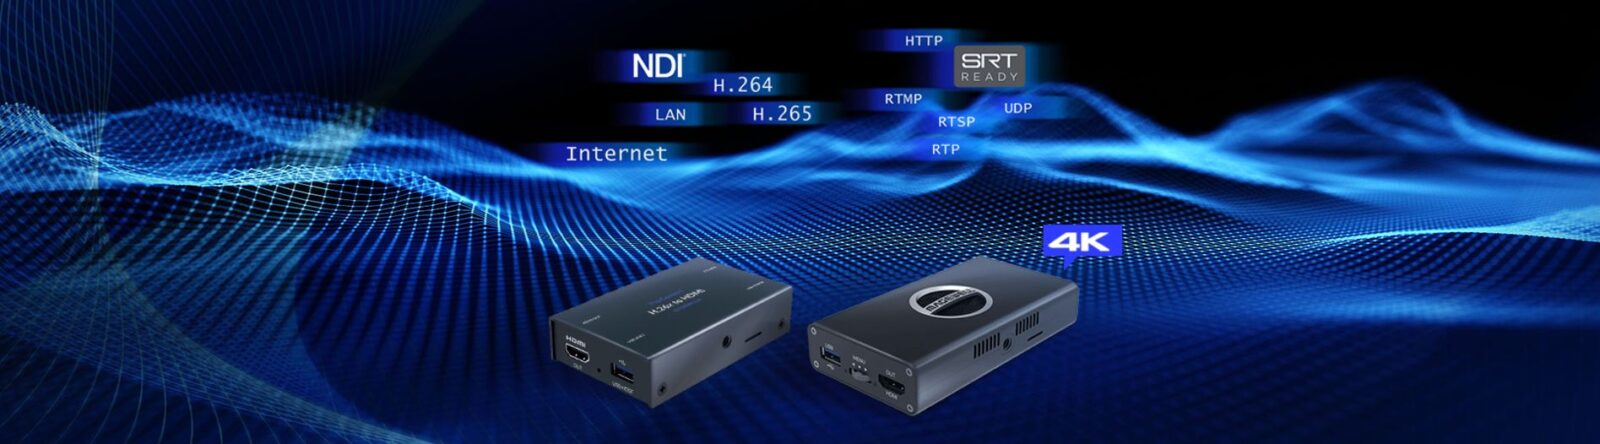 Pro Convert for NDI to HDMI